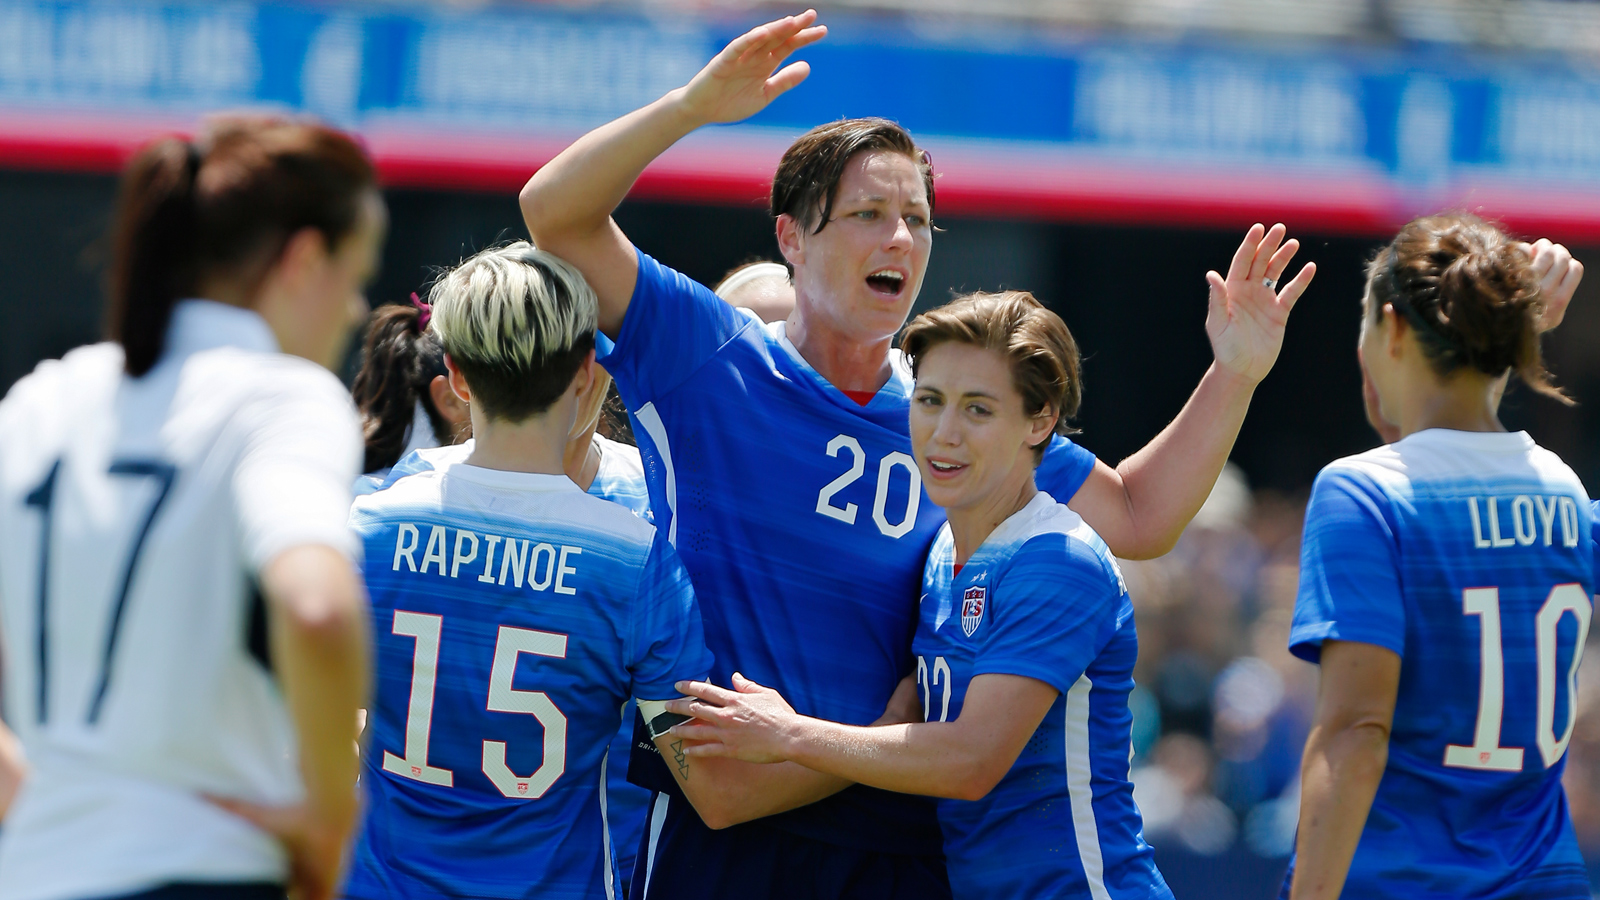 Abby Wambach celebrates one of her two goals vs. Ireland as the USWNT took a 3-0 win on Mother's Day at Avaya Stadium.